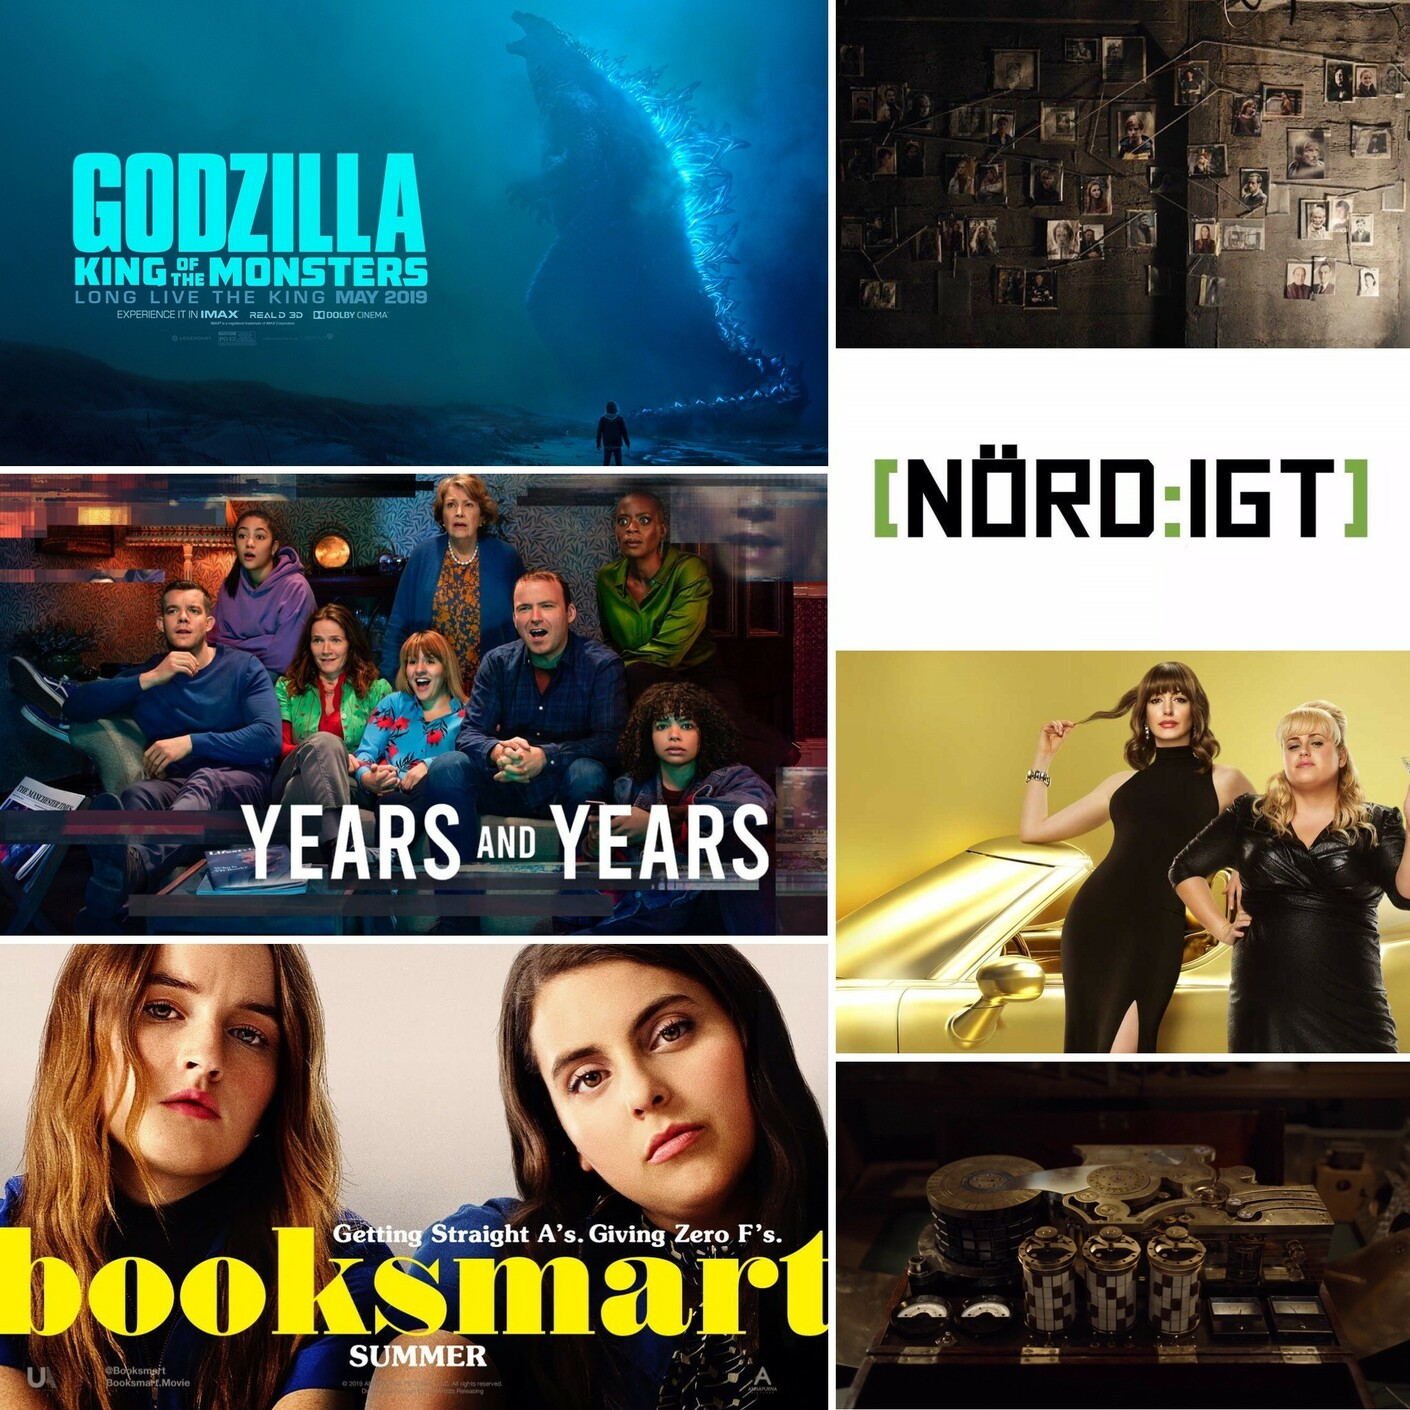 264. Den med Dark S2, Booksmart, Years and Years, The Hustle och Godzilla 2: King of the Monsters